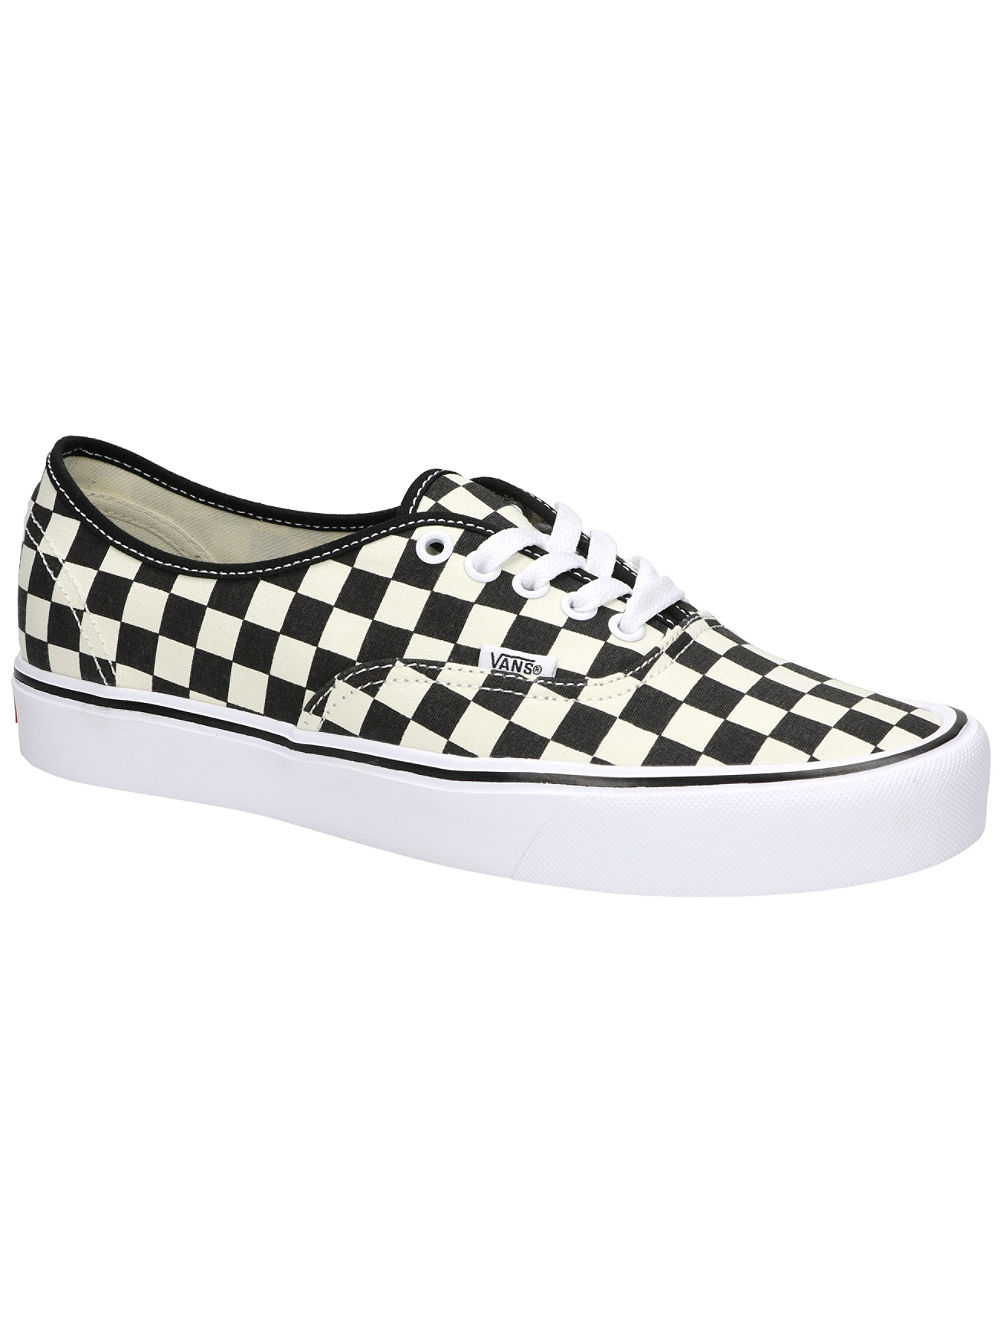 Buy Vans Checkerboard Authentic Light Sneakers online at blue-tomato.com acb50aa2a